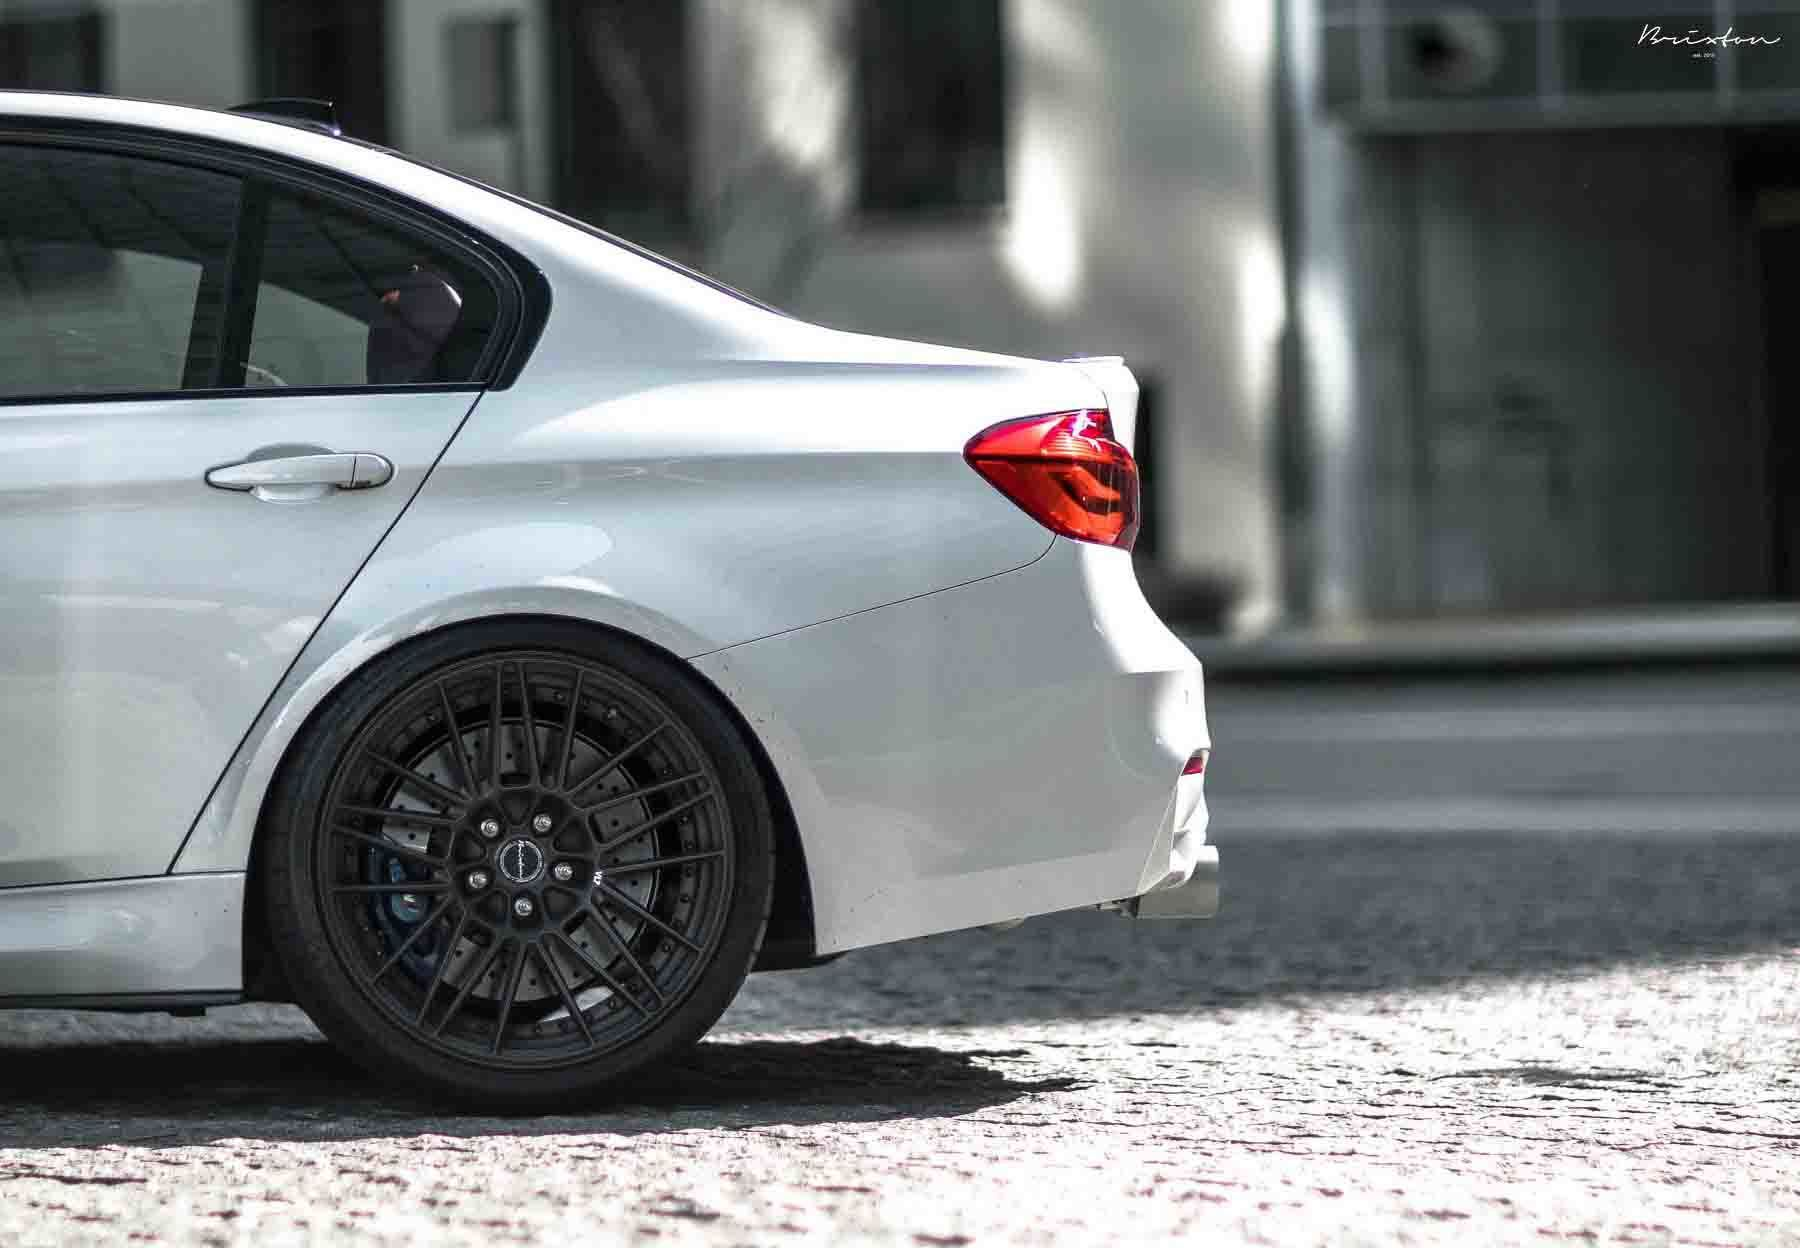 images-products-1-2017-232974305-mineral-white-bmw-f80-m3-brixton-forged-vl7-duo-series-brushed-smoke-black-06-1800x1248.jpg